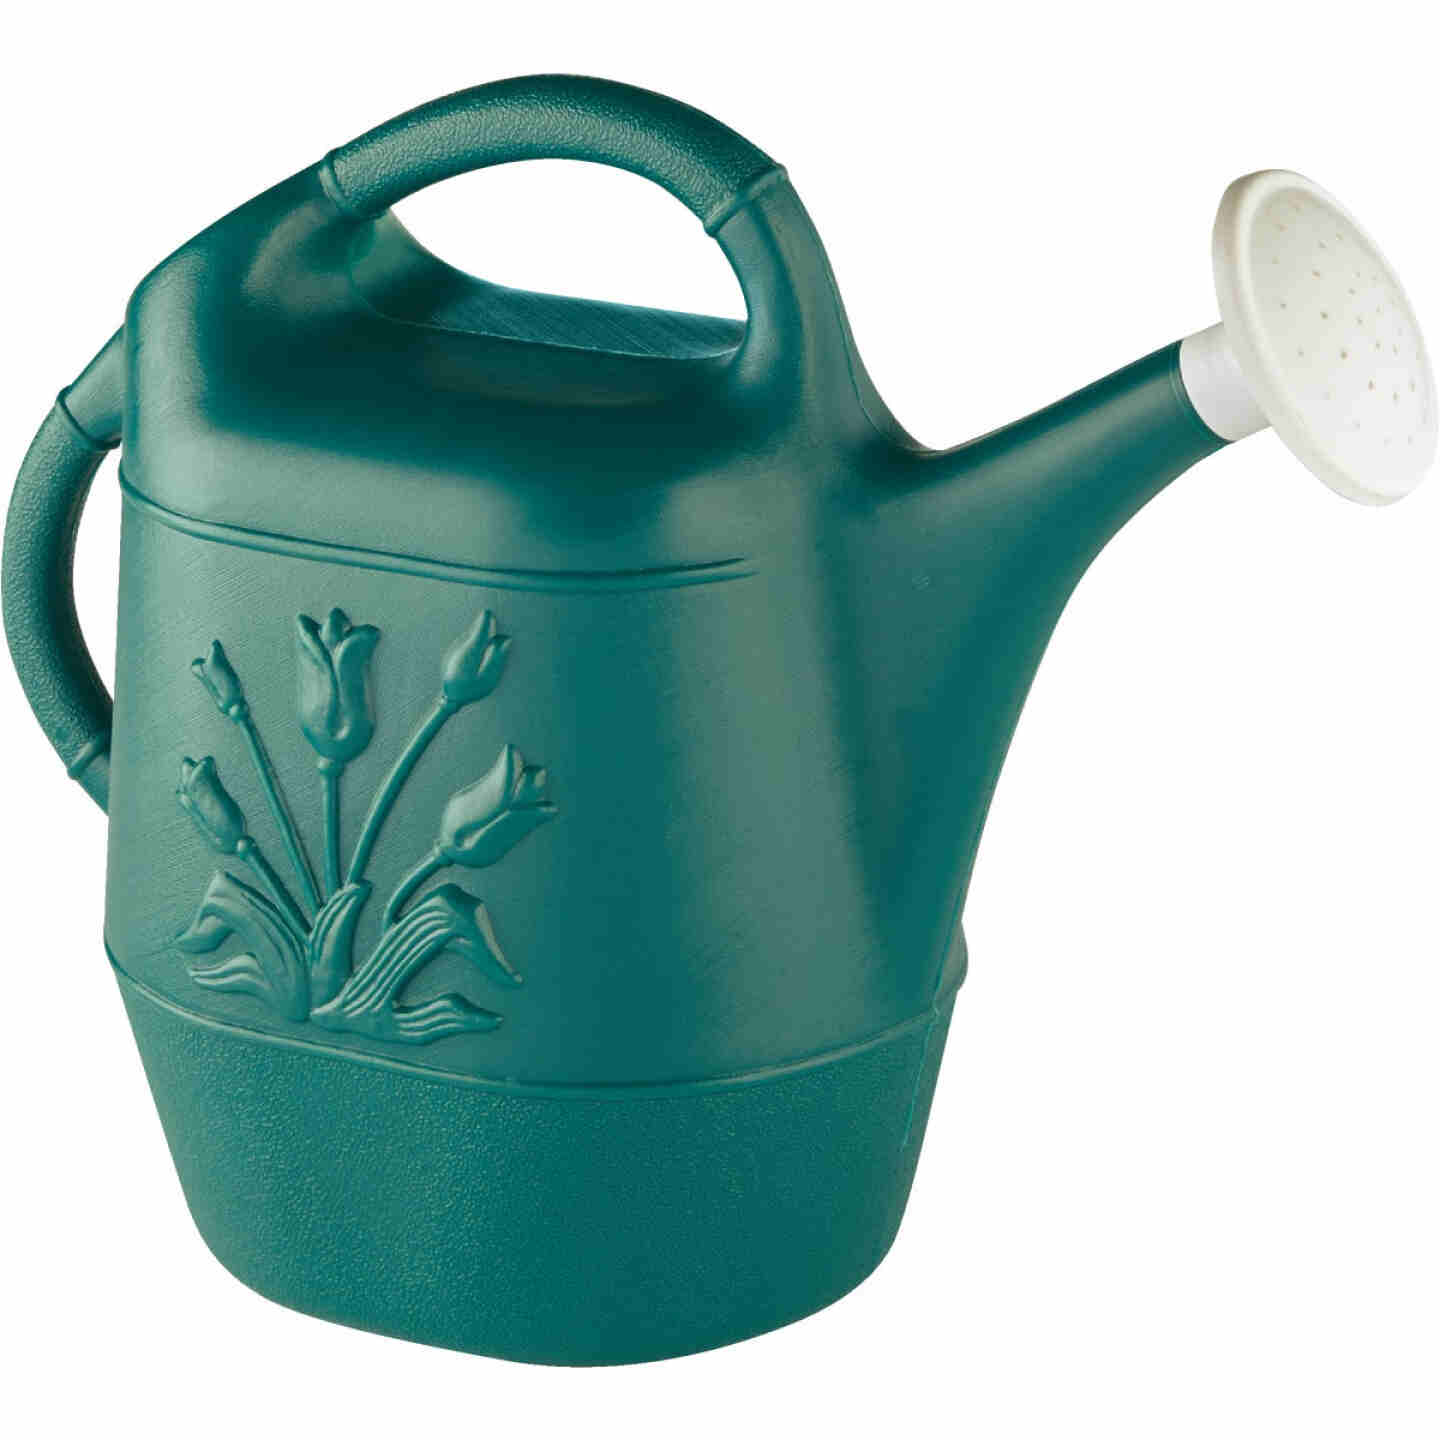 United Products 2 Gal. Hunter Green Poly Watering Can Image 1